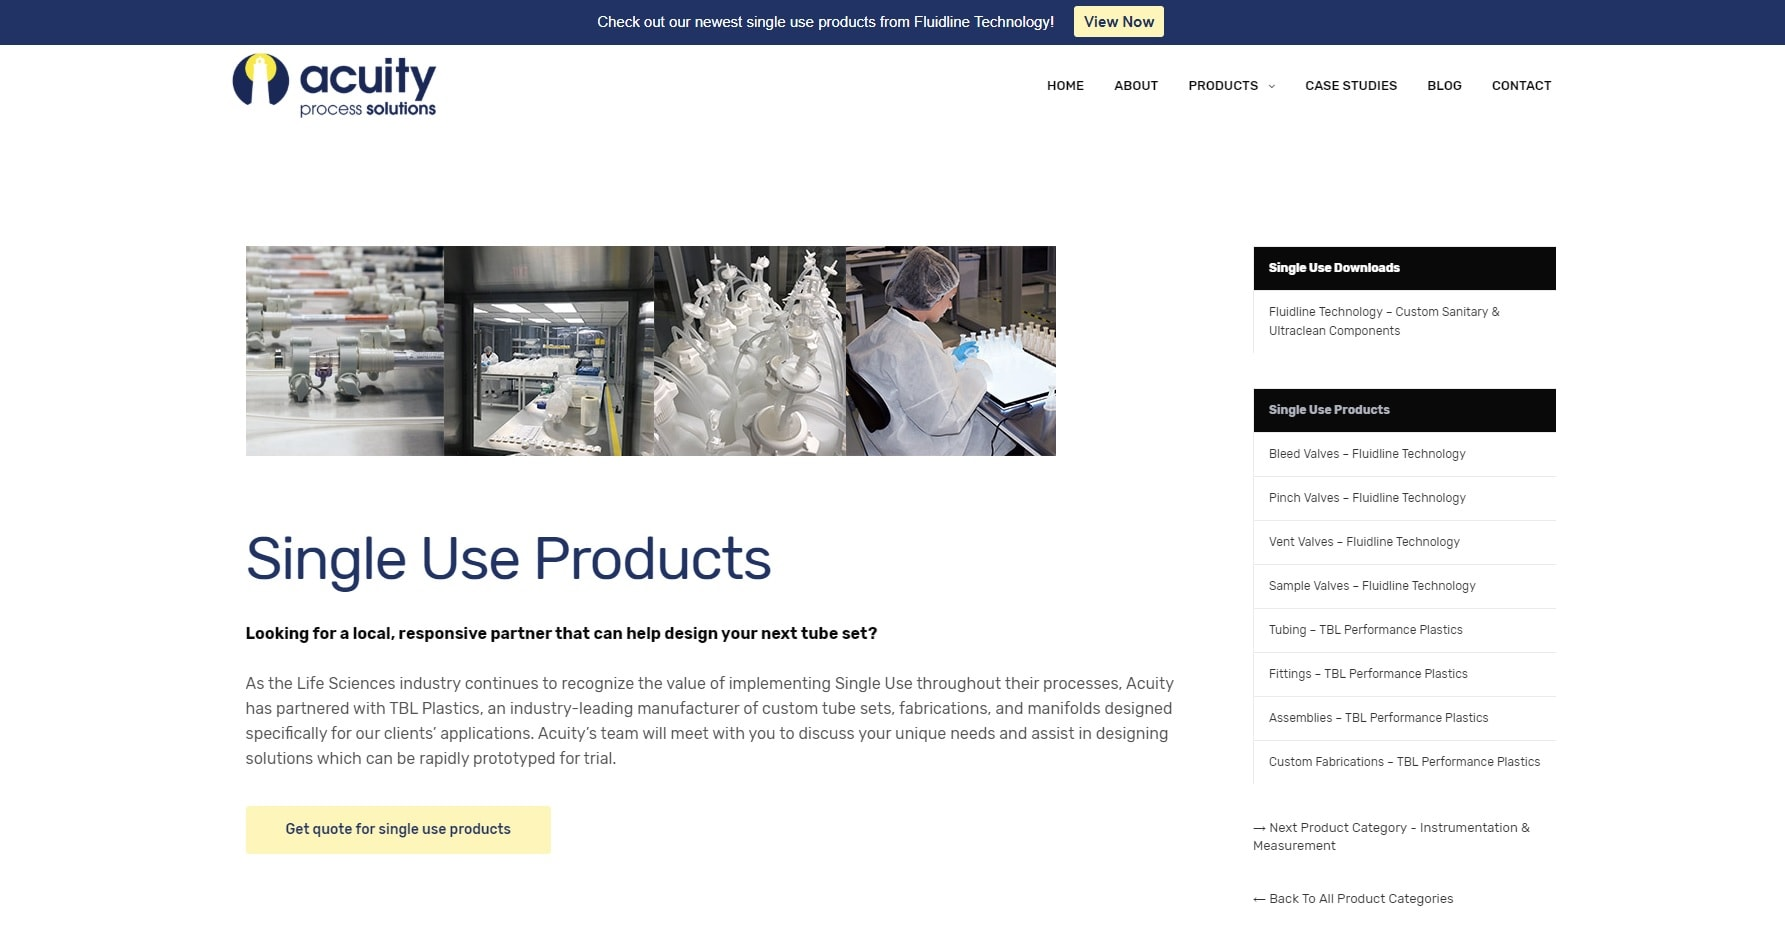 Acuity Process Solutions